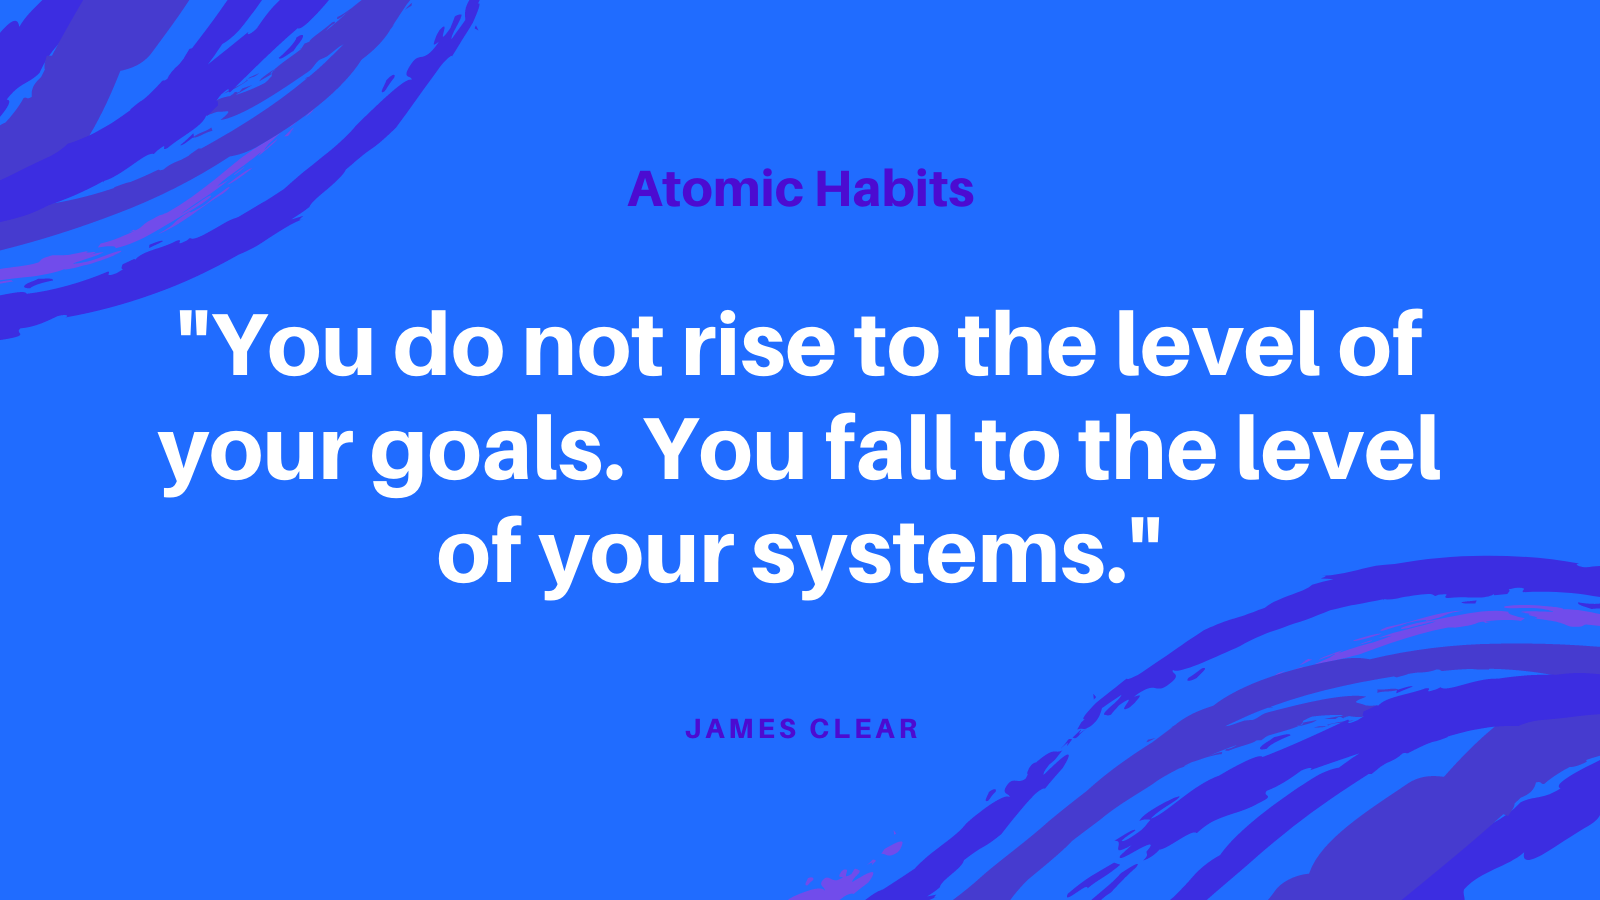 You do not rise to the level of your goals. You fall to the level of your systems.